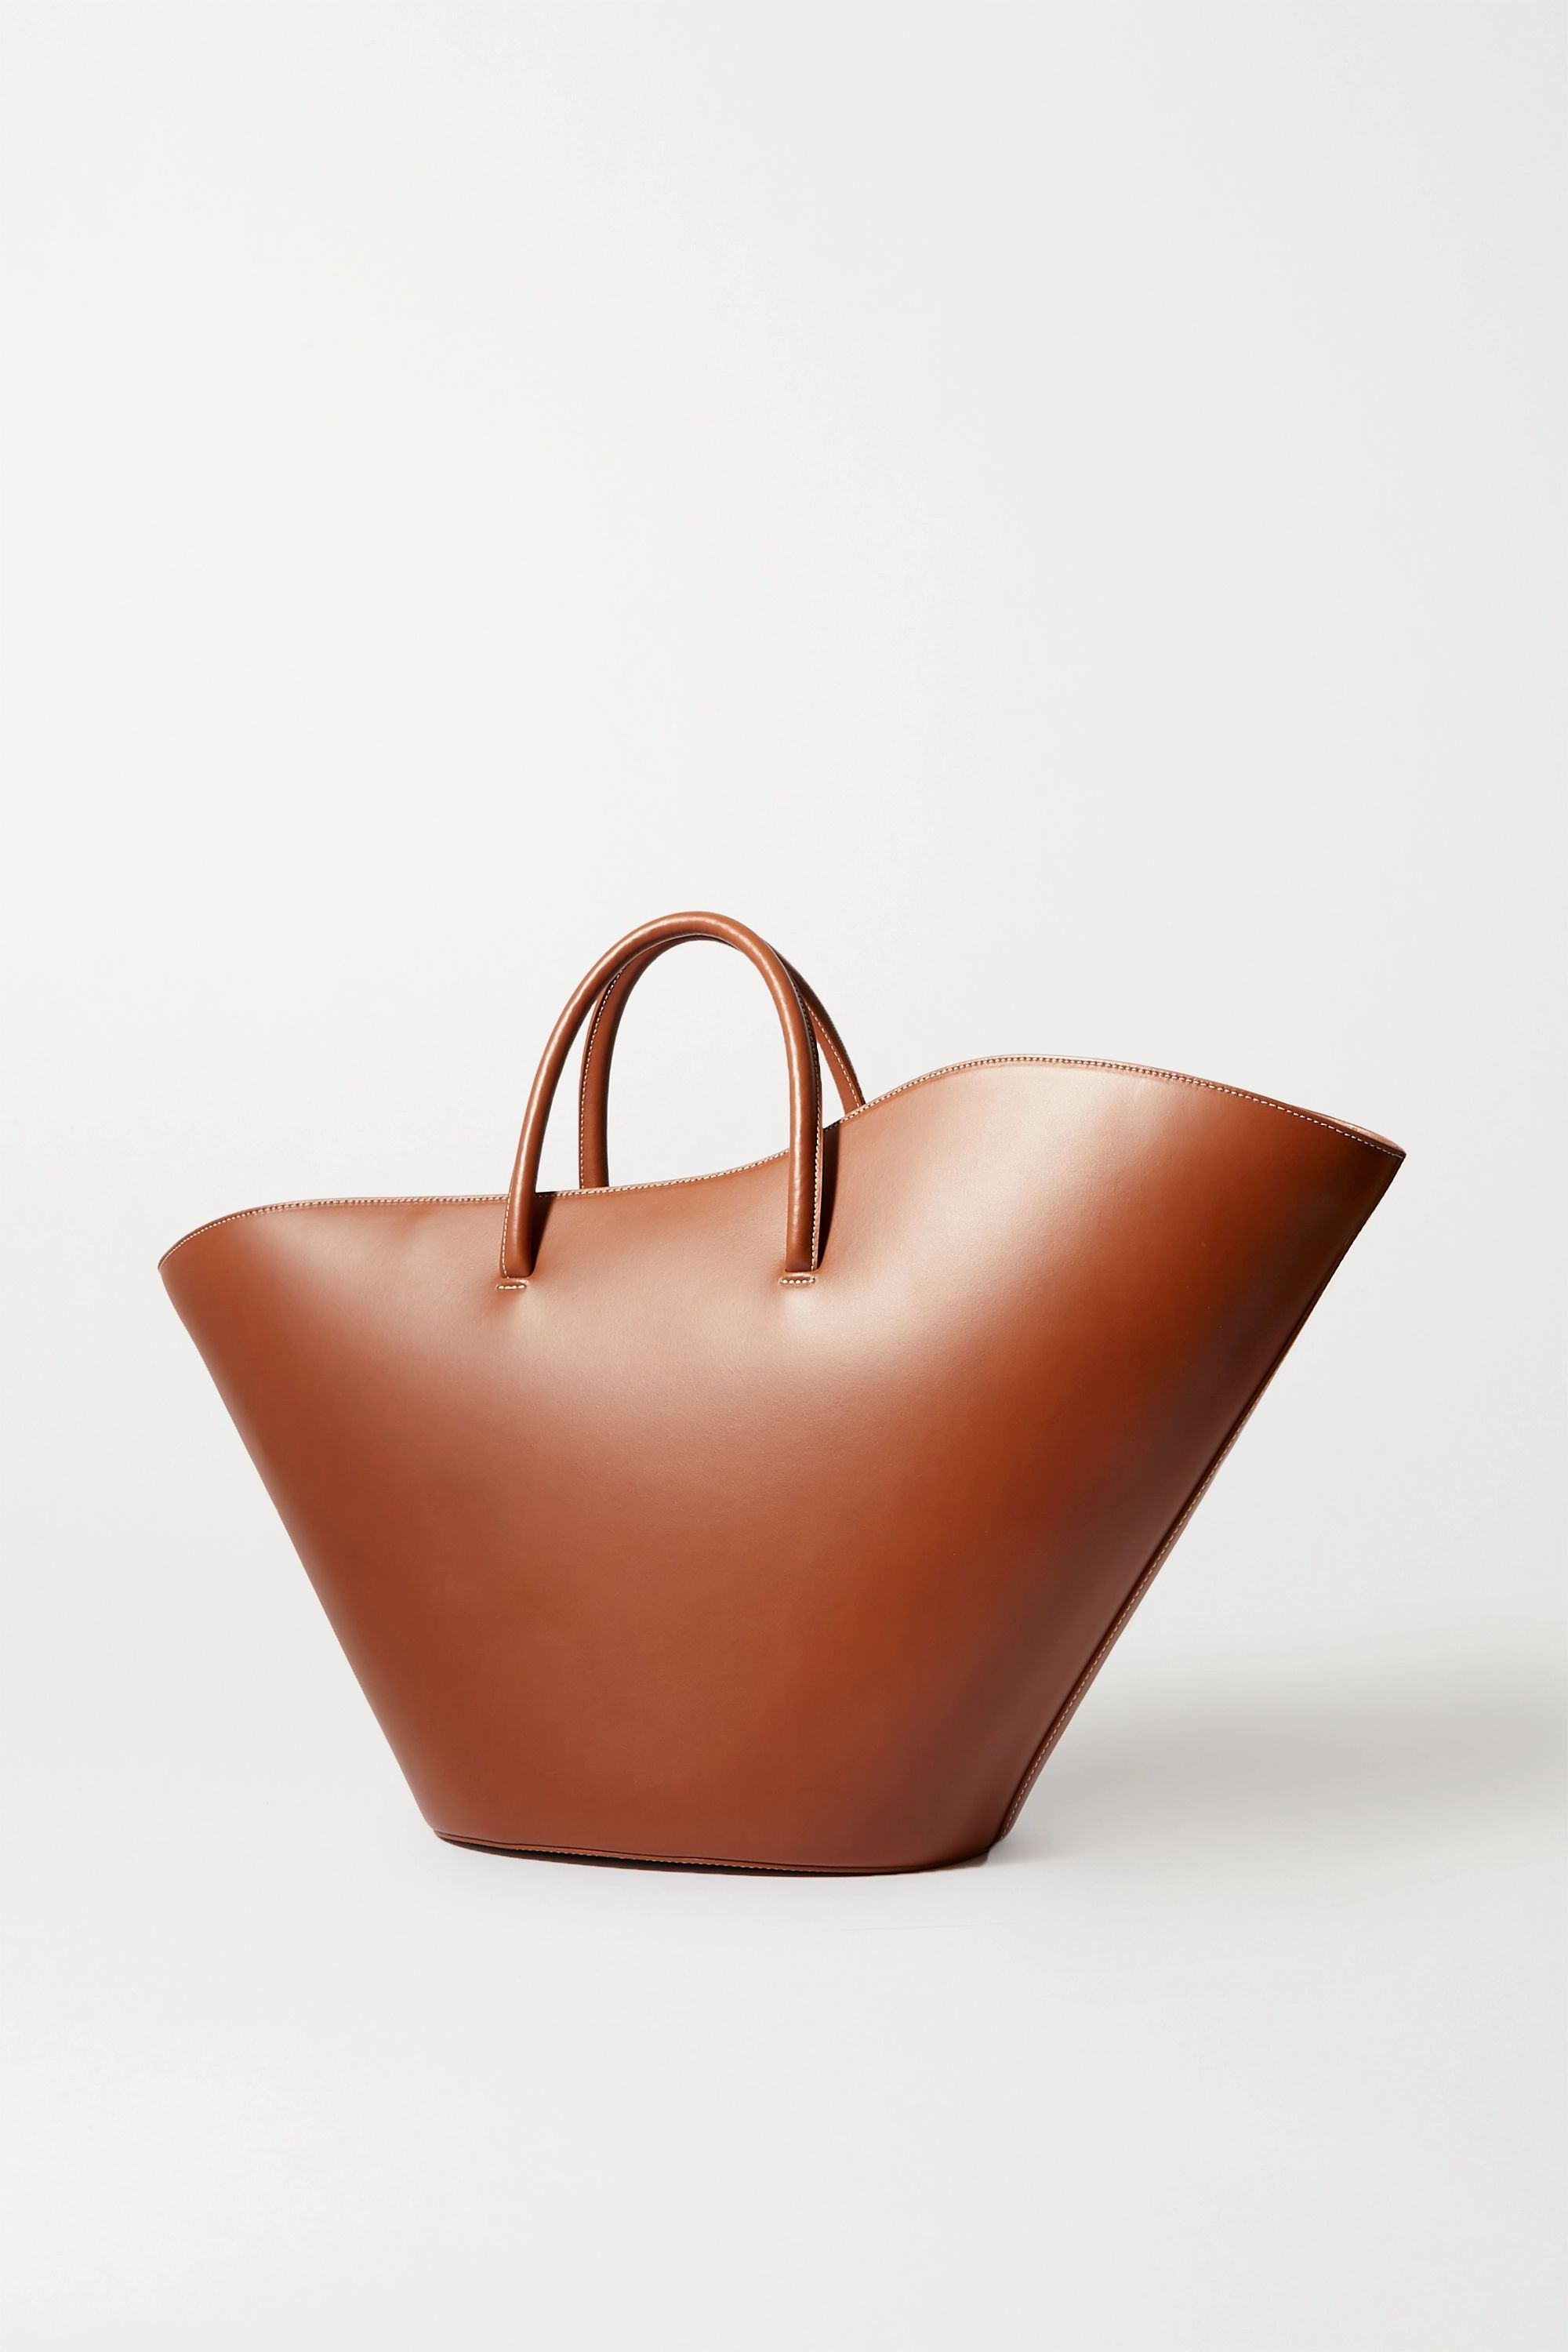 Little Liffner Tulip large leather tote